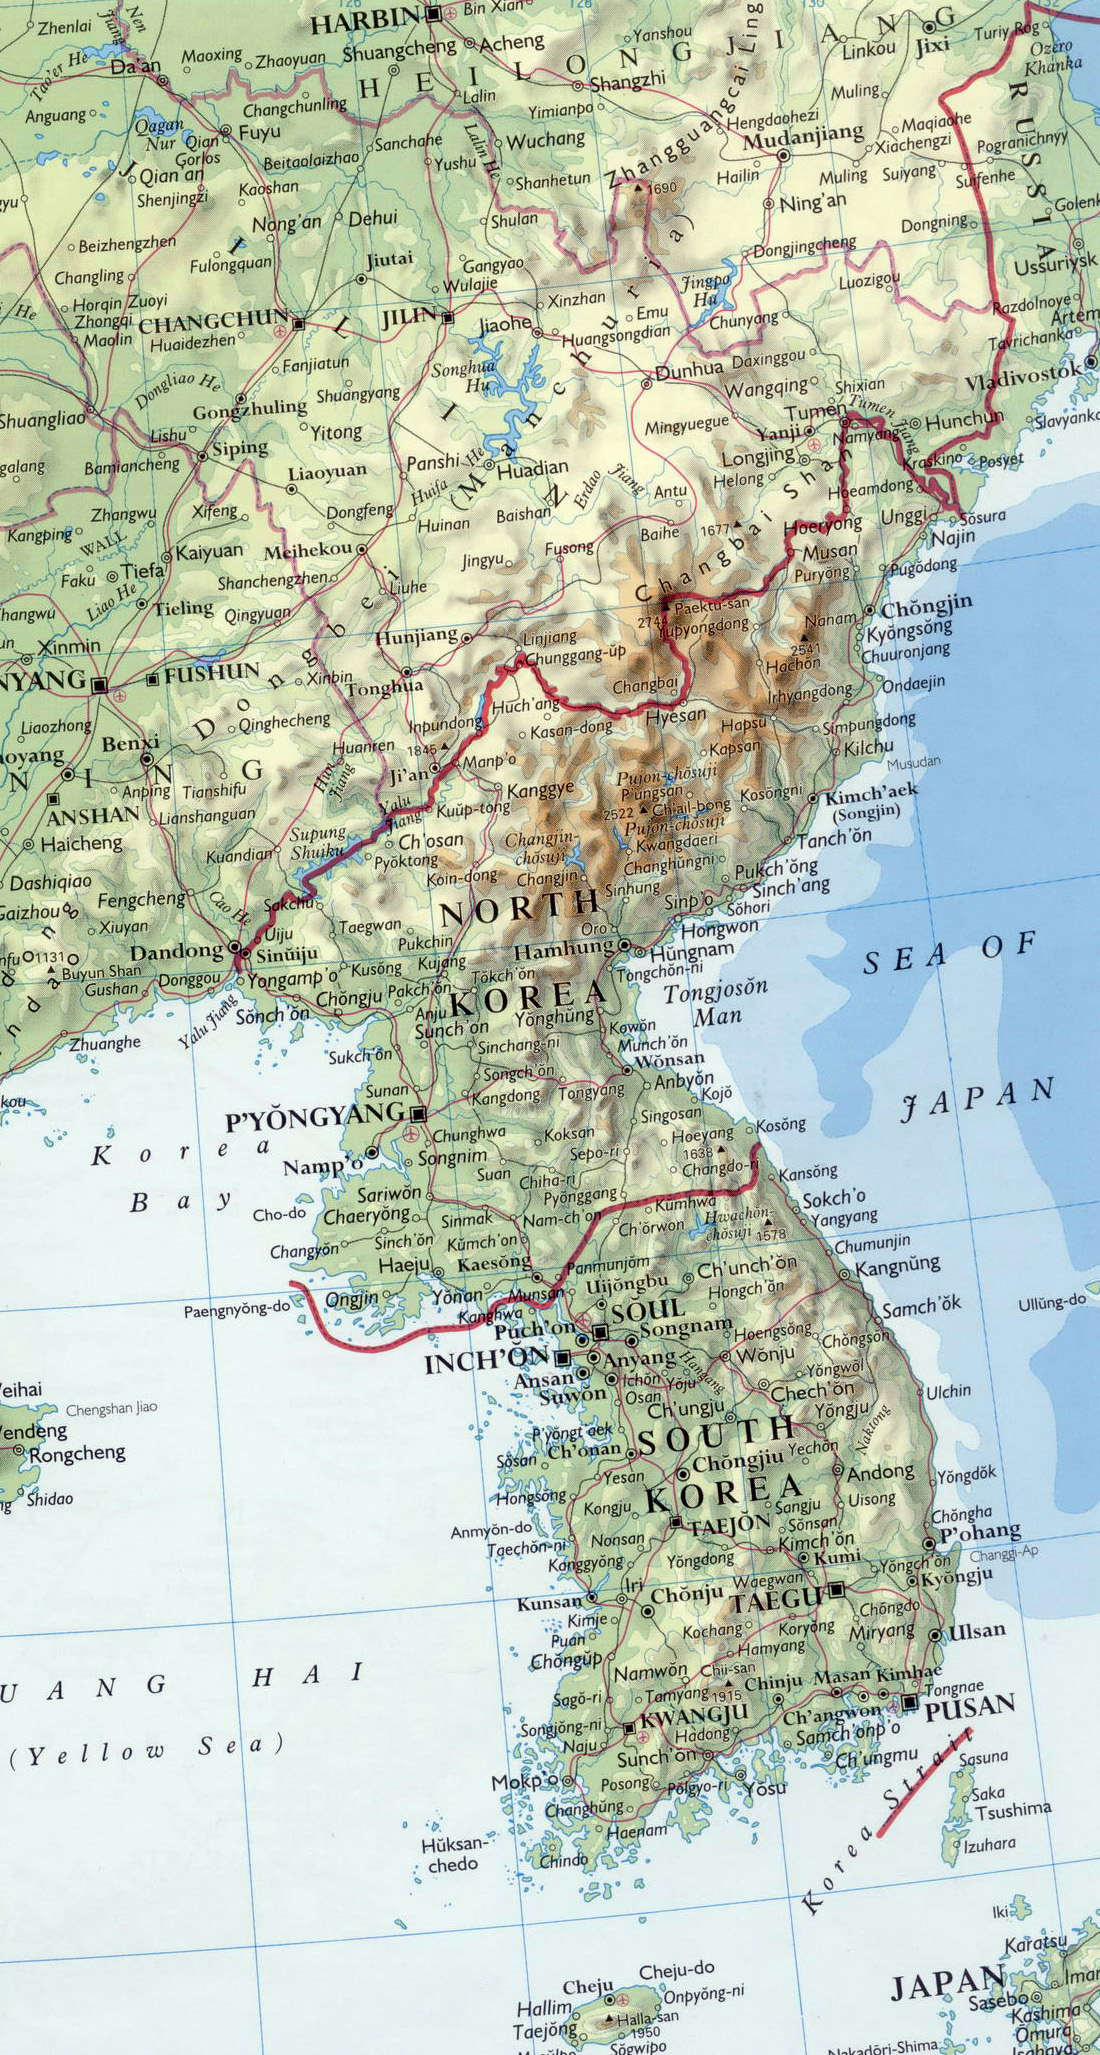 Maps of north korea dprk detailed map of north korea in detailed map of korean peninsula with relief roads and major cities gumiabroncs Gallery